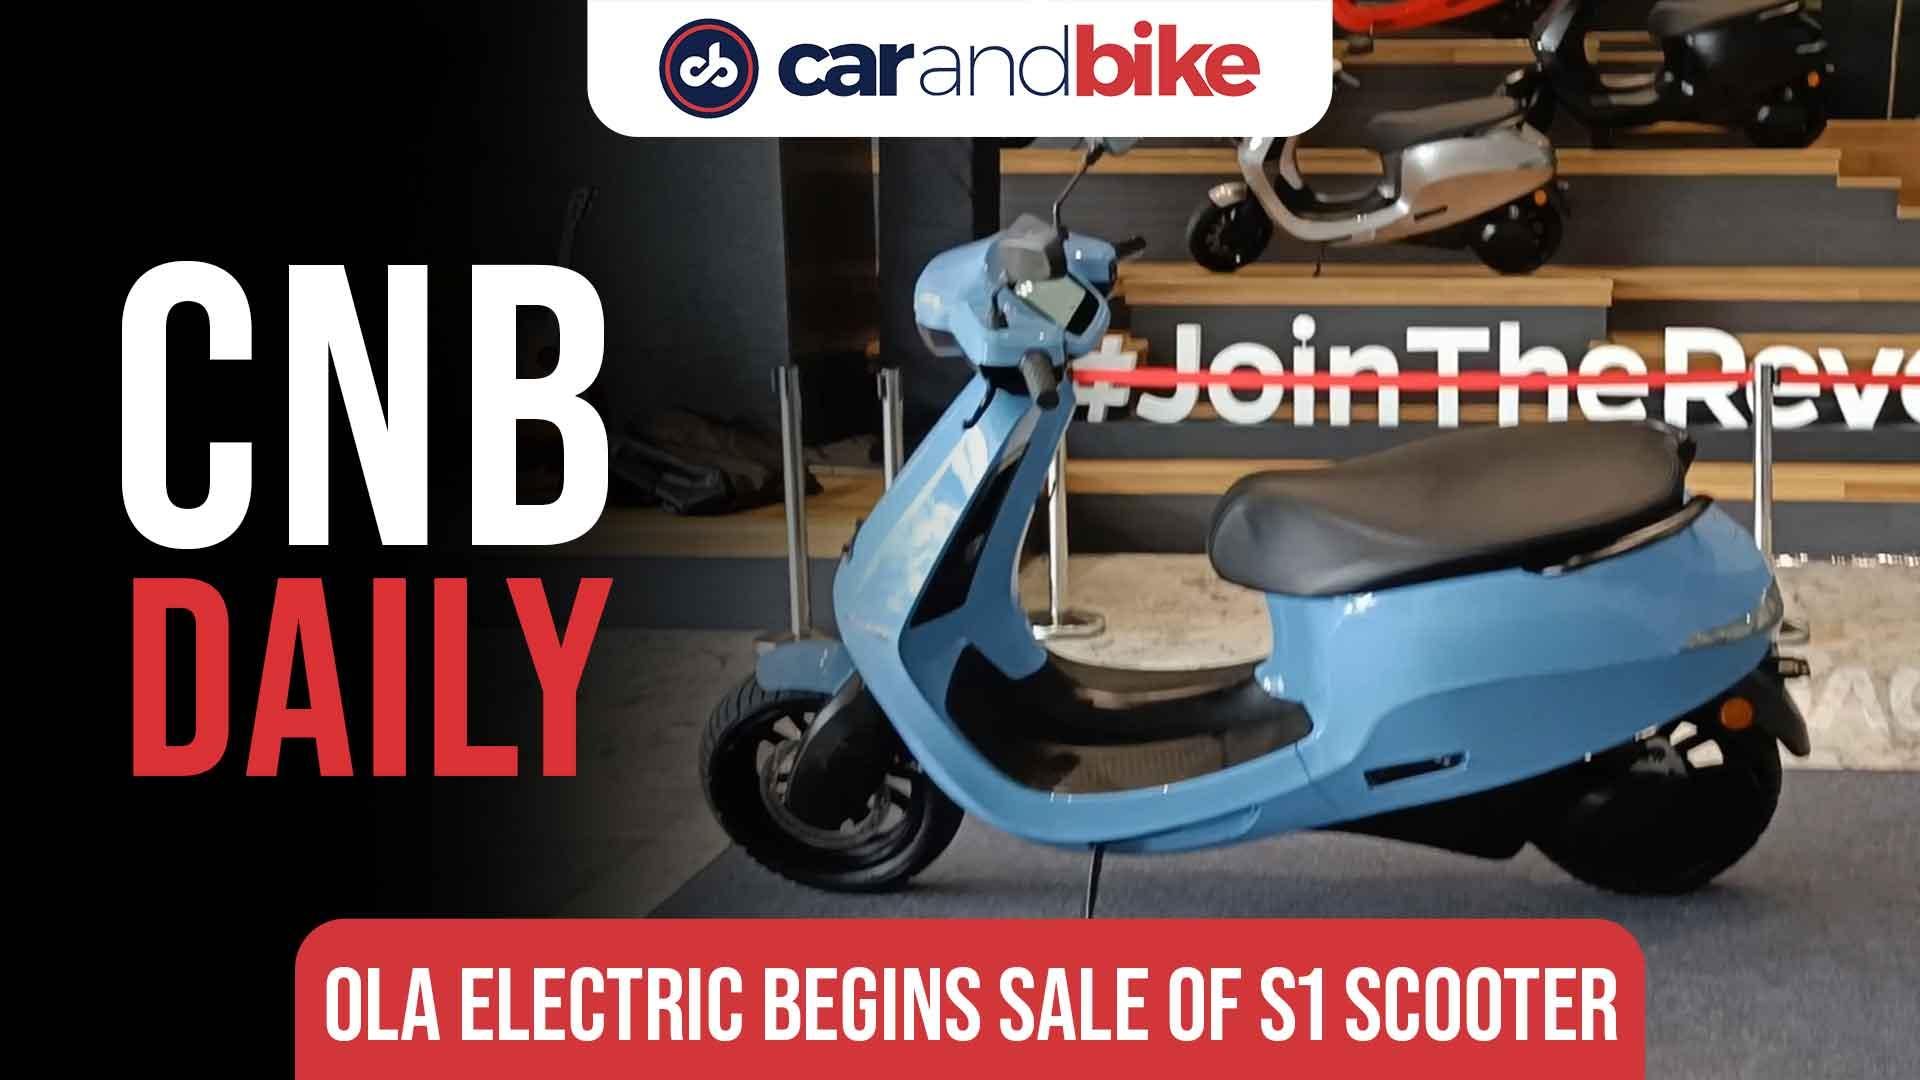 Ola Electric Scooter sales begin in India